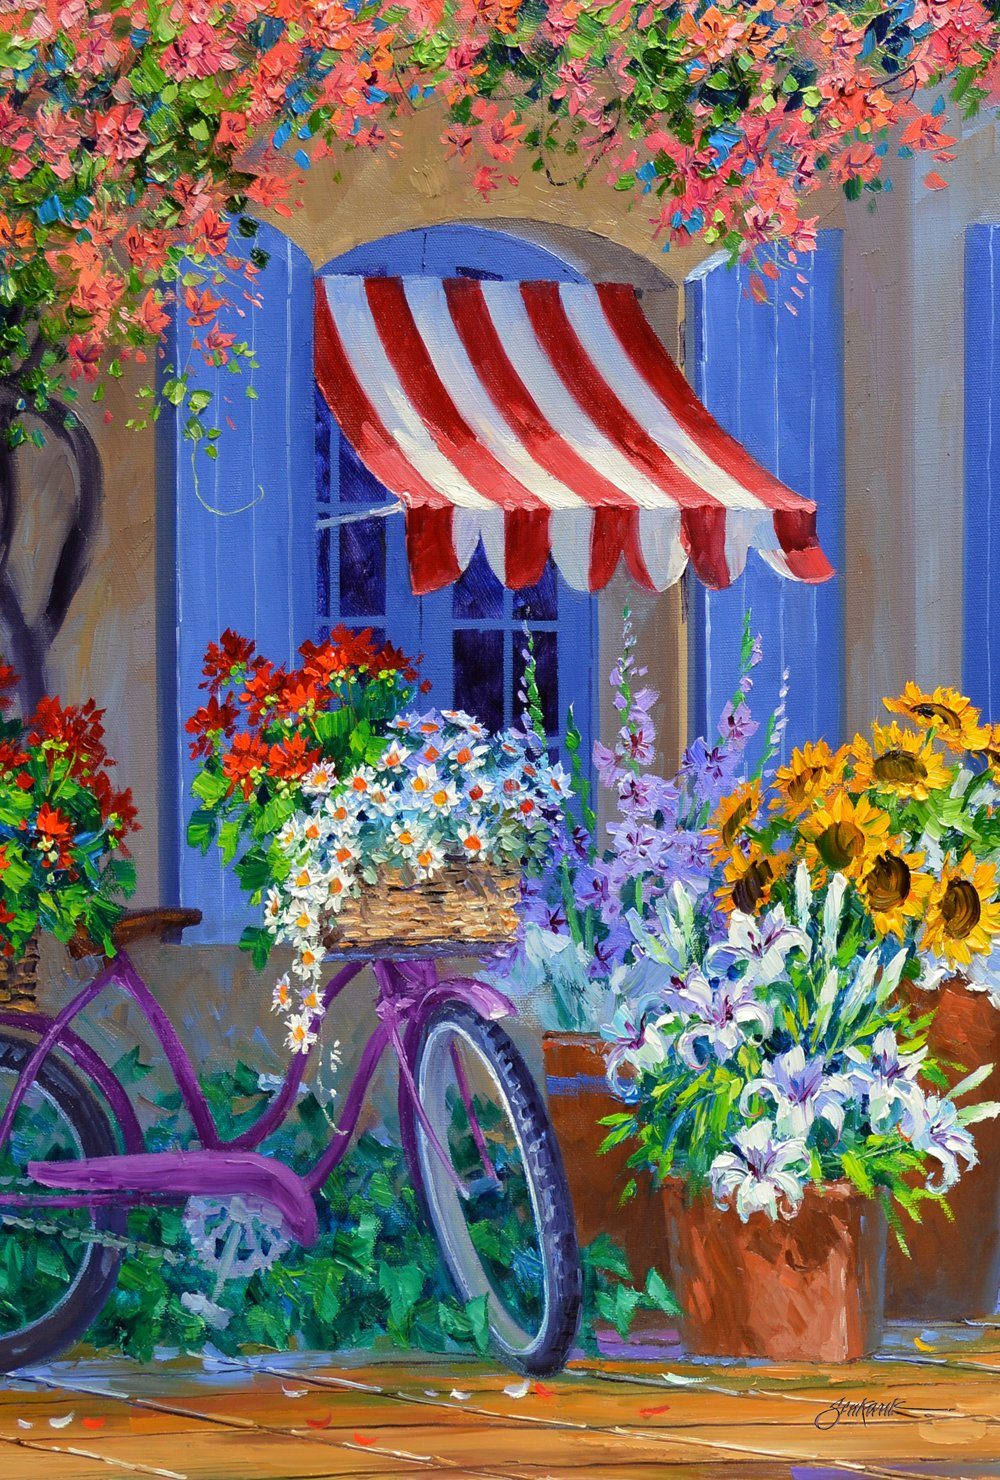 Toland Home Garden Bloomin' Bike 12.5 x 18 Inch Decorative Colorful Spring Summer Bicycle Flower Garden Flag